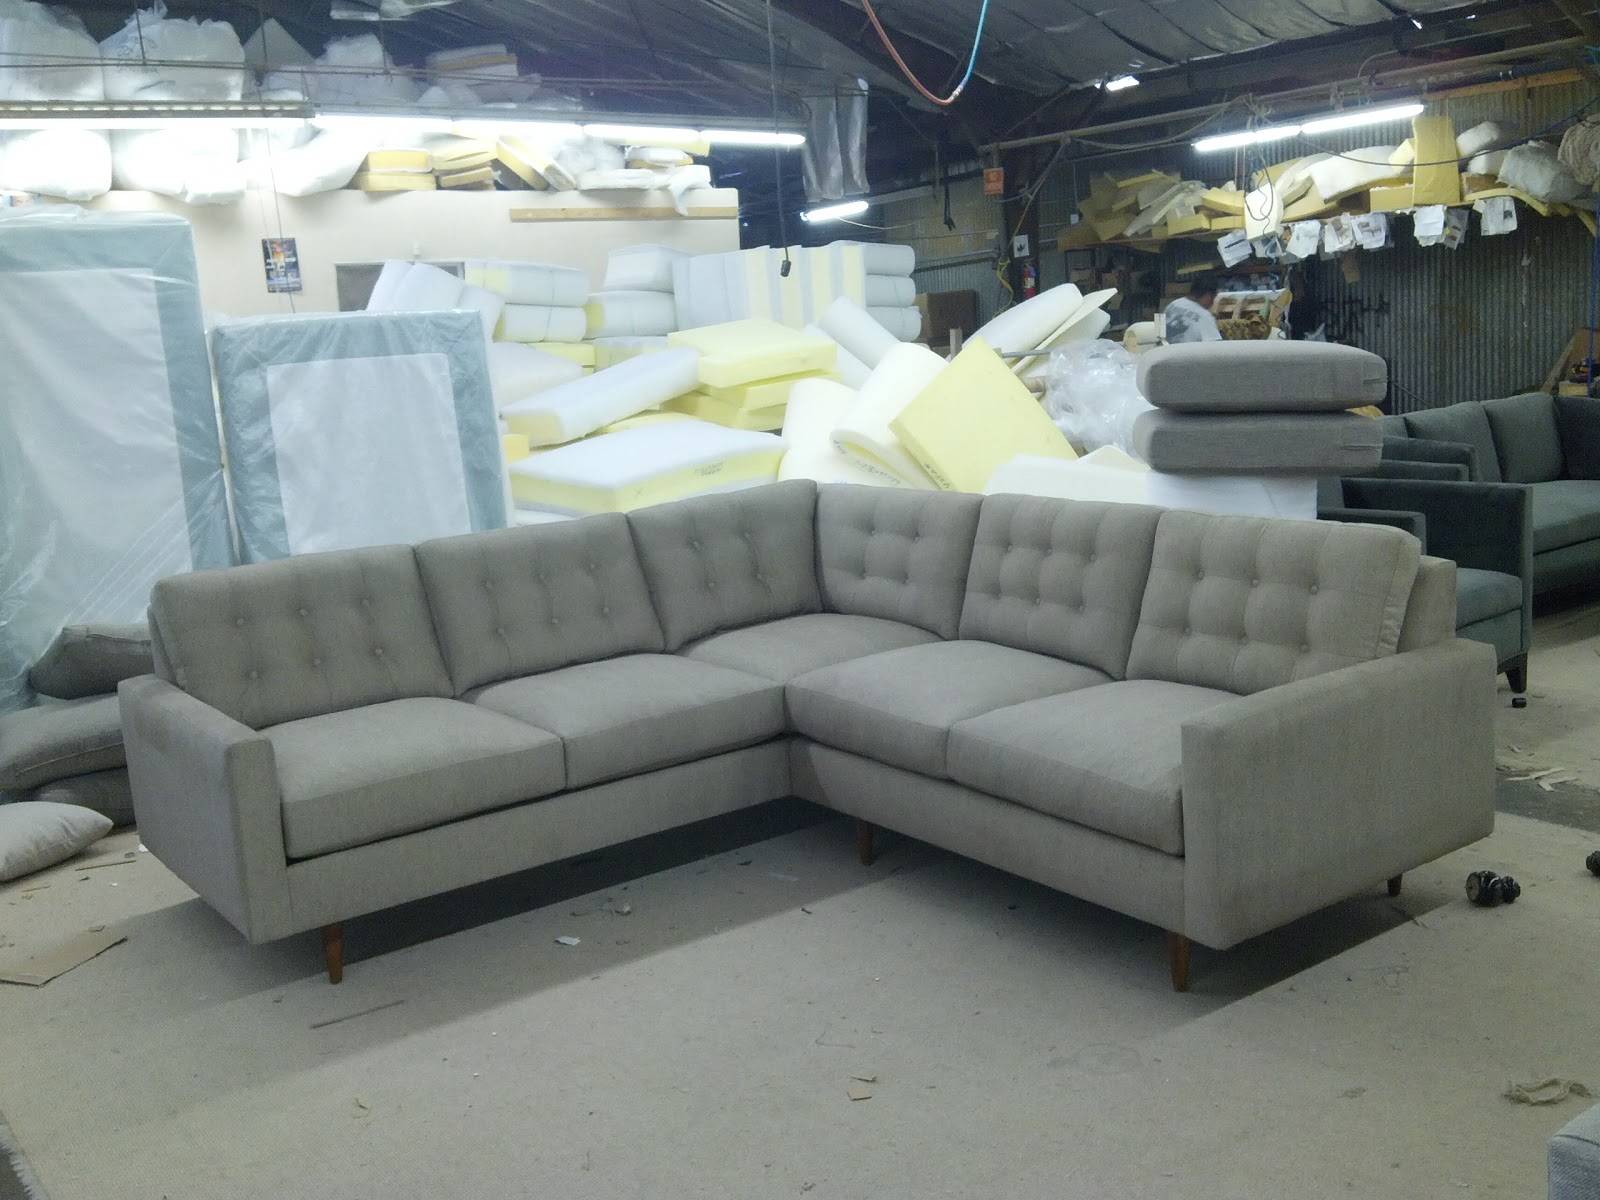 The SofaWorks Custom Sofas Oh My November 2012